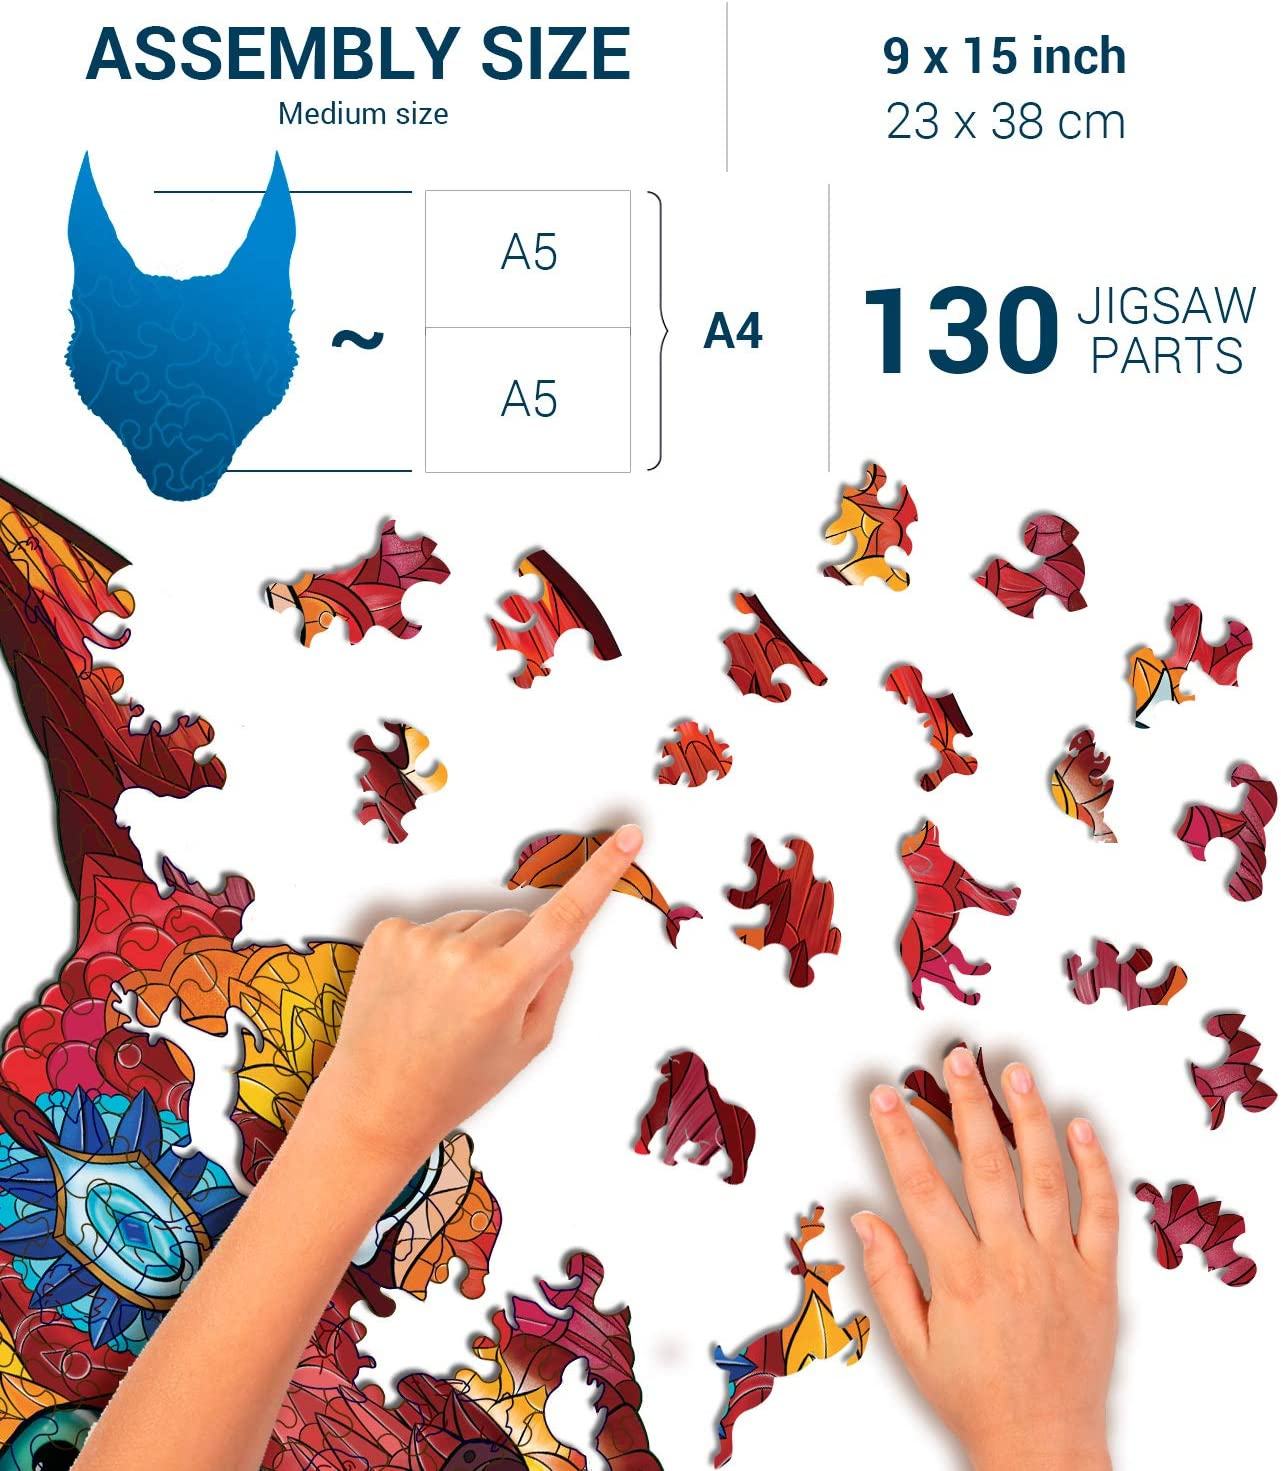 23x38 cm Size Beginner Level 130 pcs Caracal L Teens Adult Family; Majestic Animal Shaped Natural Wood Puzzle 9x14.1 in. Animal Wooden Jigsaw Puzzles for Kids Hodslen Woods 10+ Years